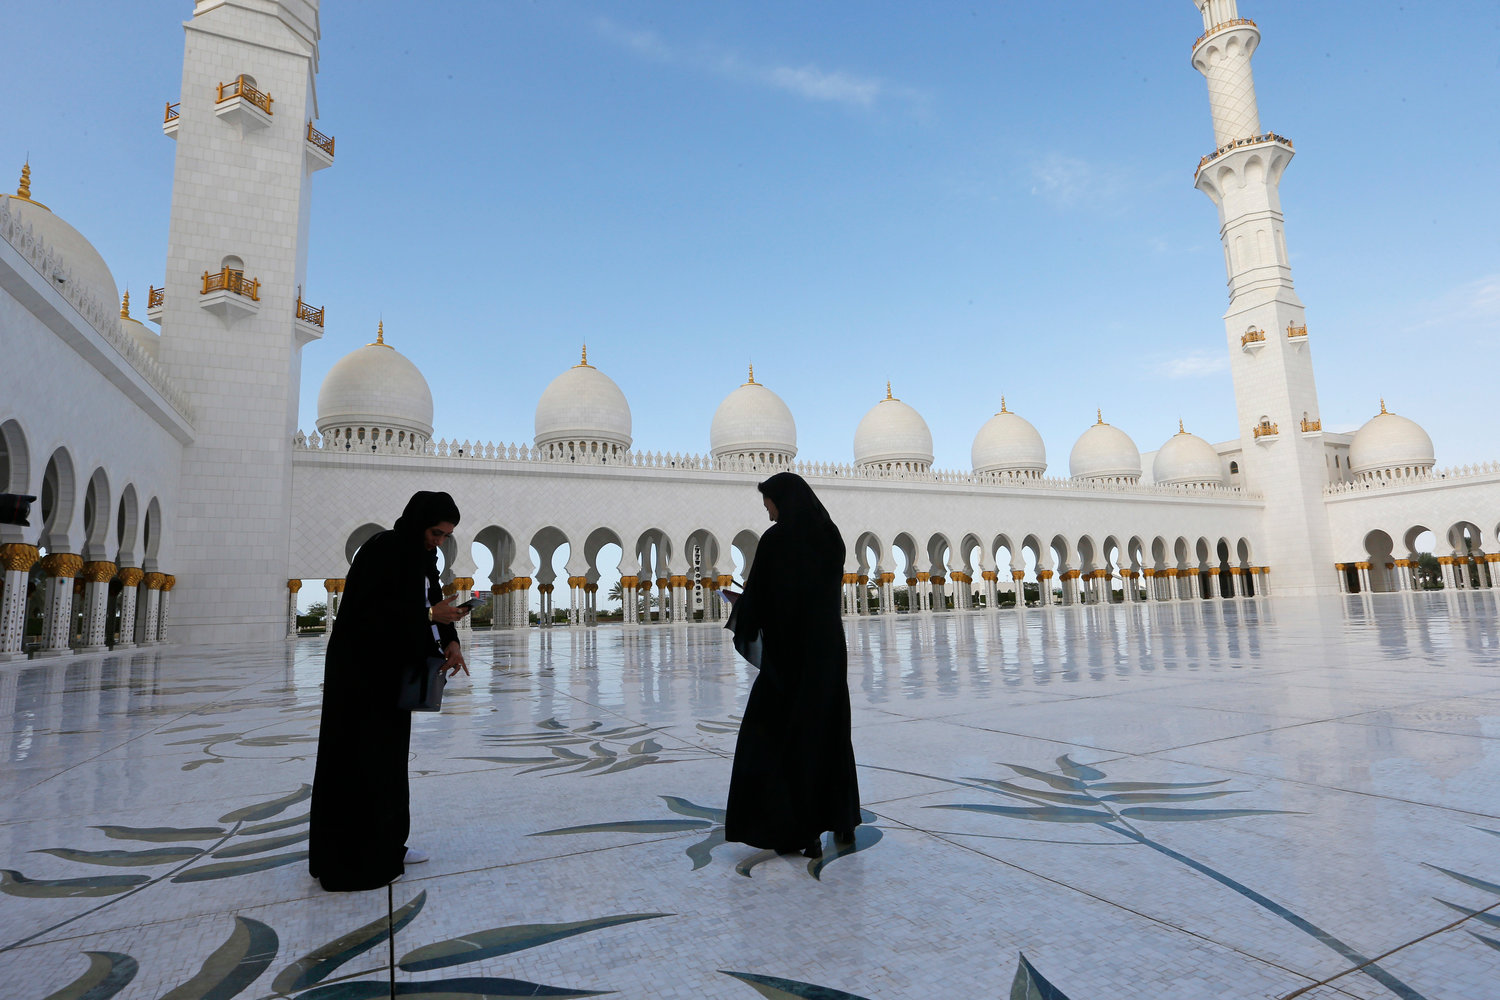 Women are pictured at the Sheik Zayed Grand Mosque in Abu Dhabi, United Arab Emirates, Feb. 4.